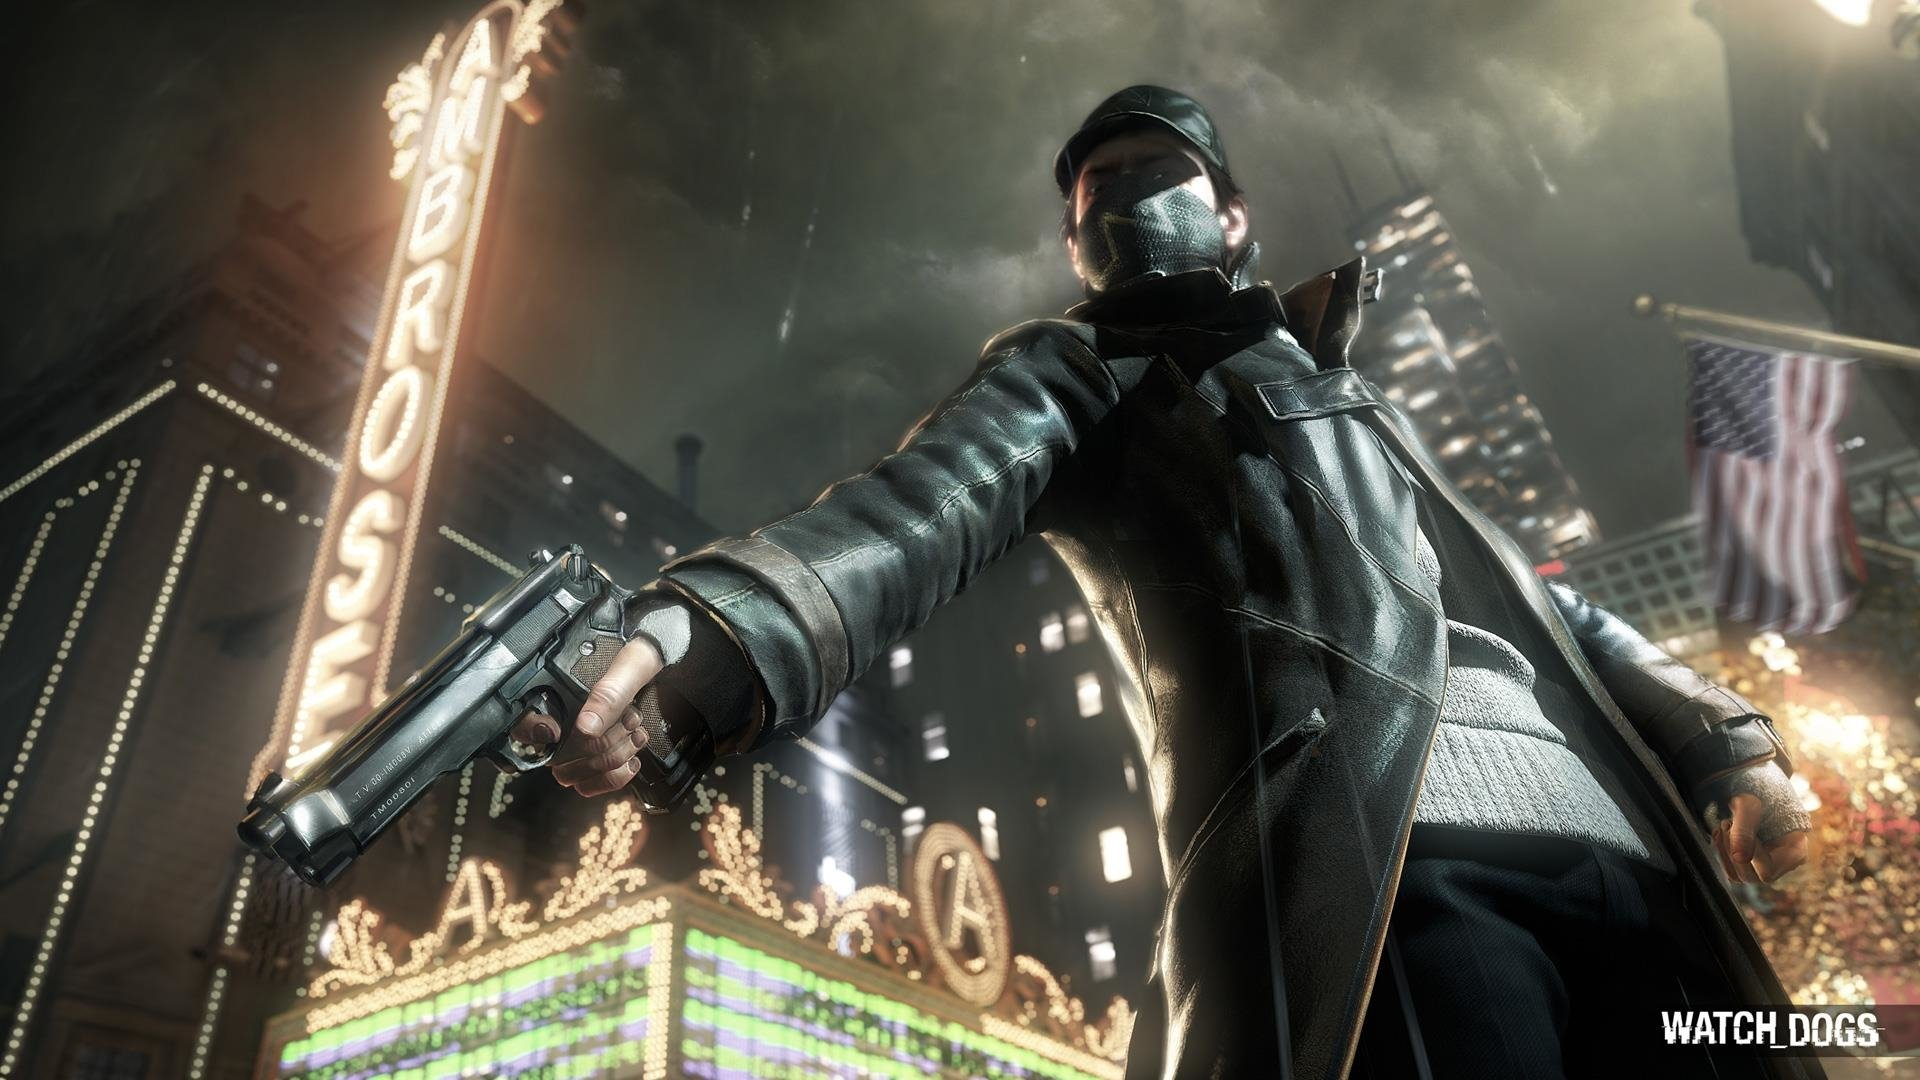 Watch dogs на андроид обои